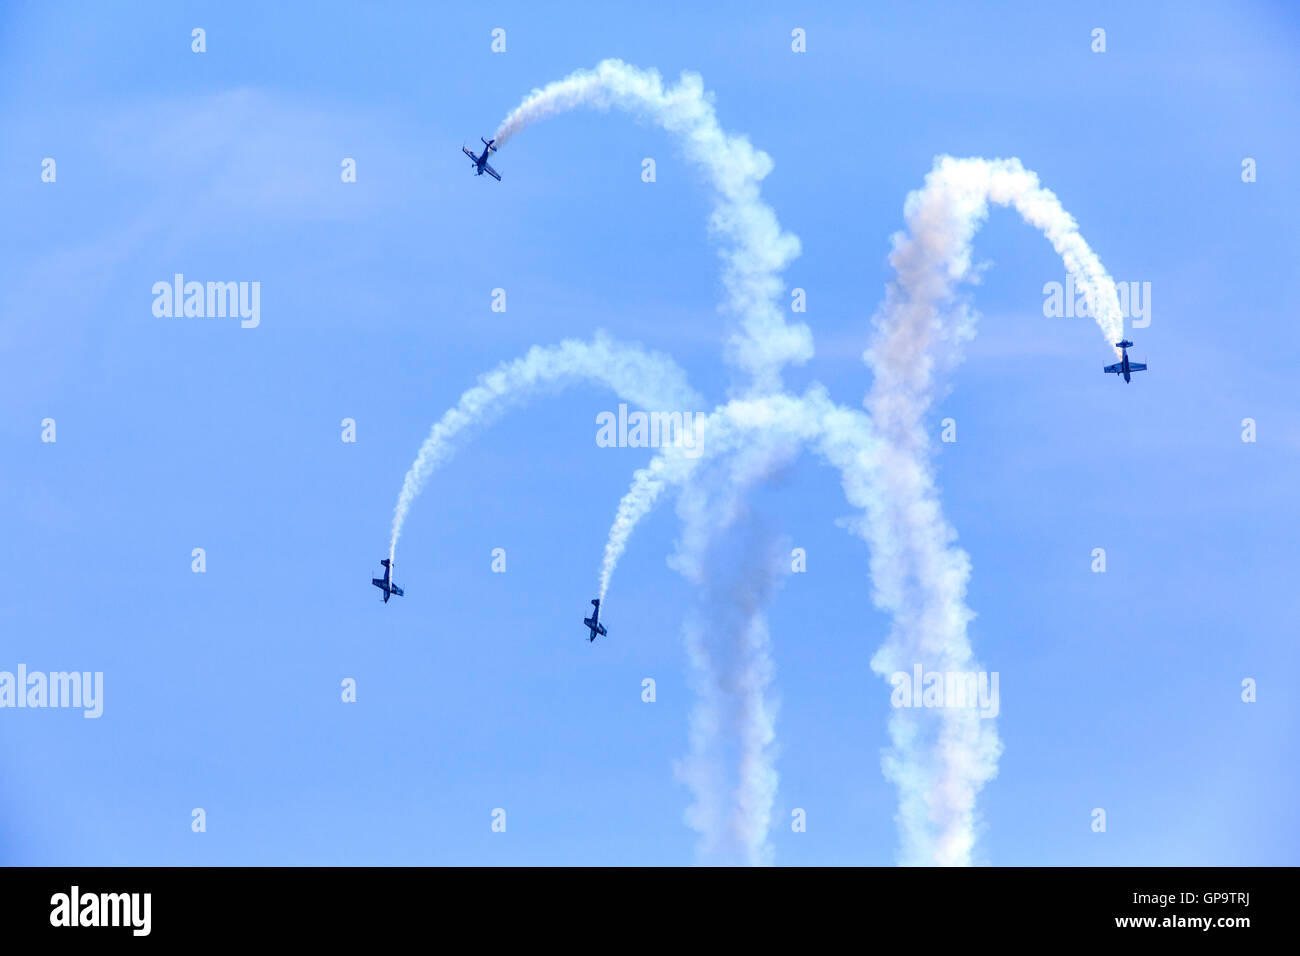 The Blades aerobatic display at Eastbourne Airbourne Airshow 2016 - Stock Image